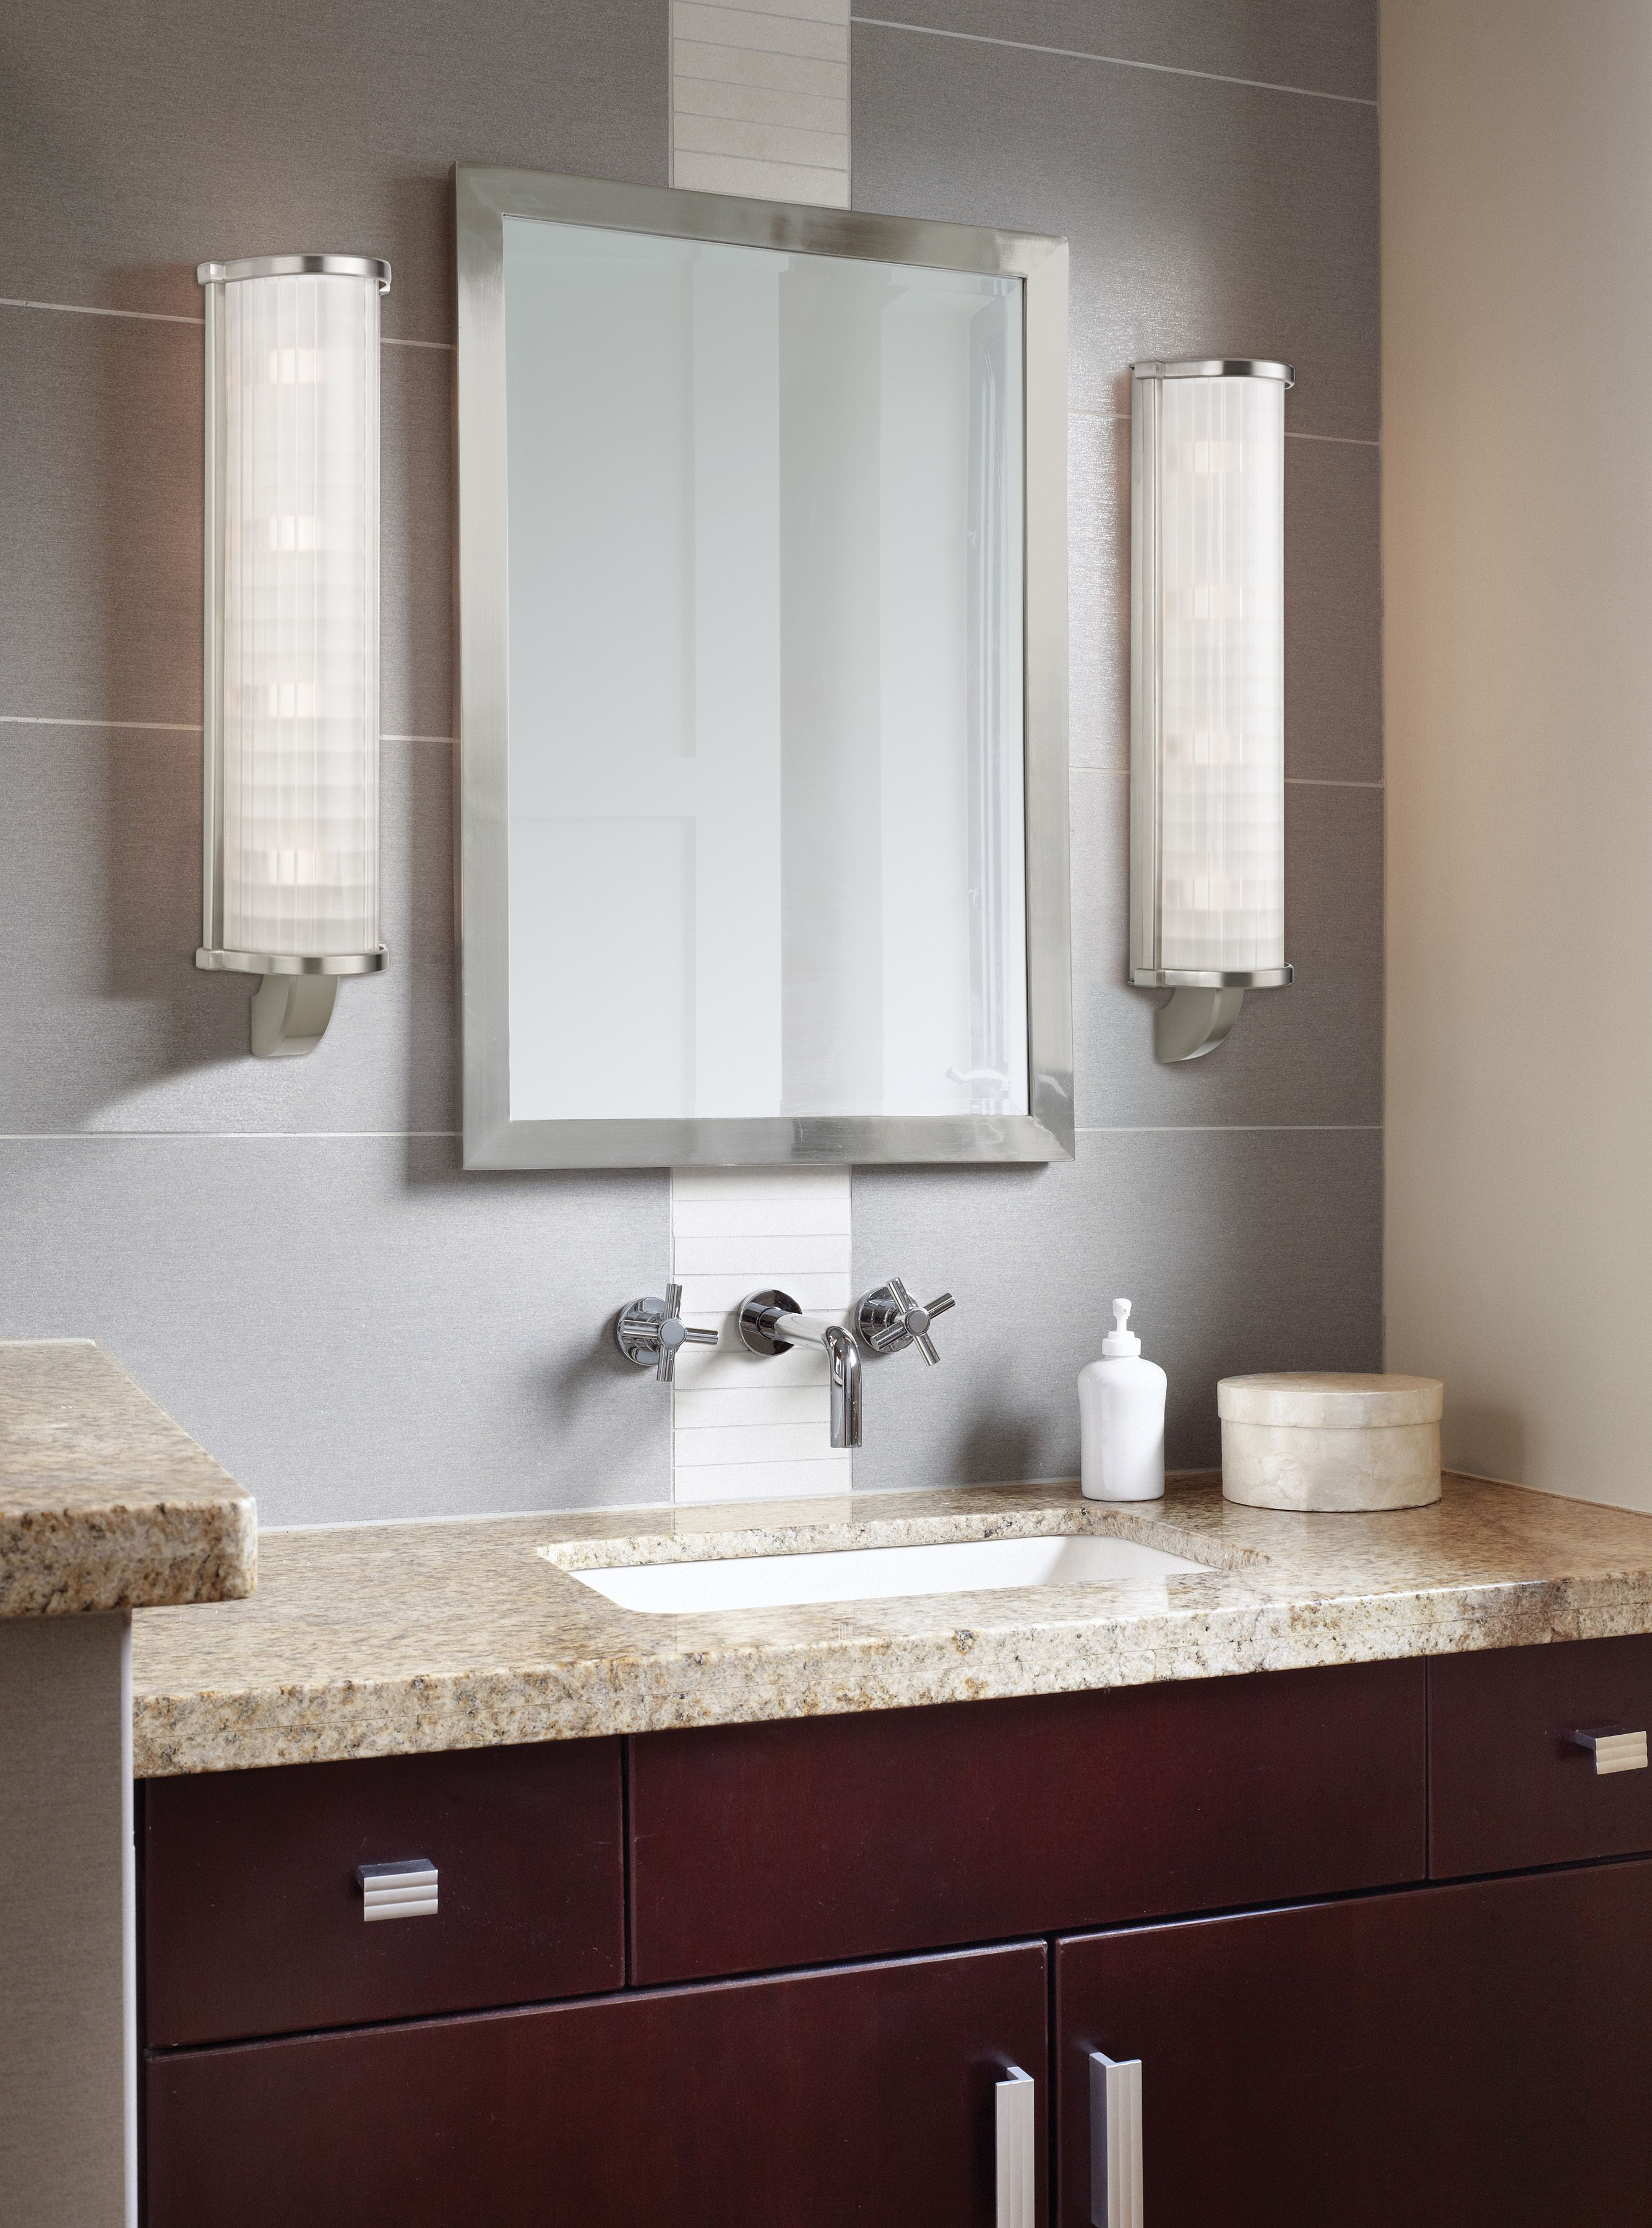 most walmart wall and prime magnifying vanity long peel canada mirror lights on plain panels light artistry decorative lighted stick mirrors